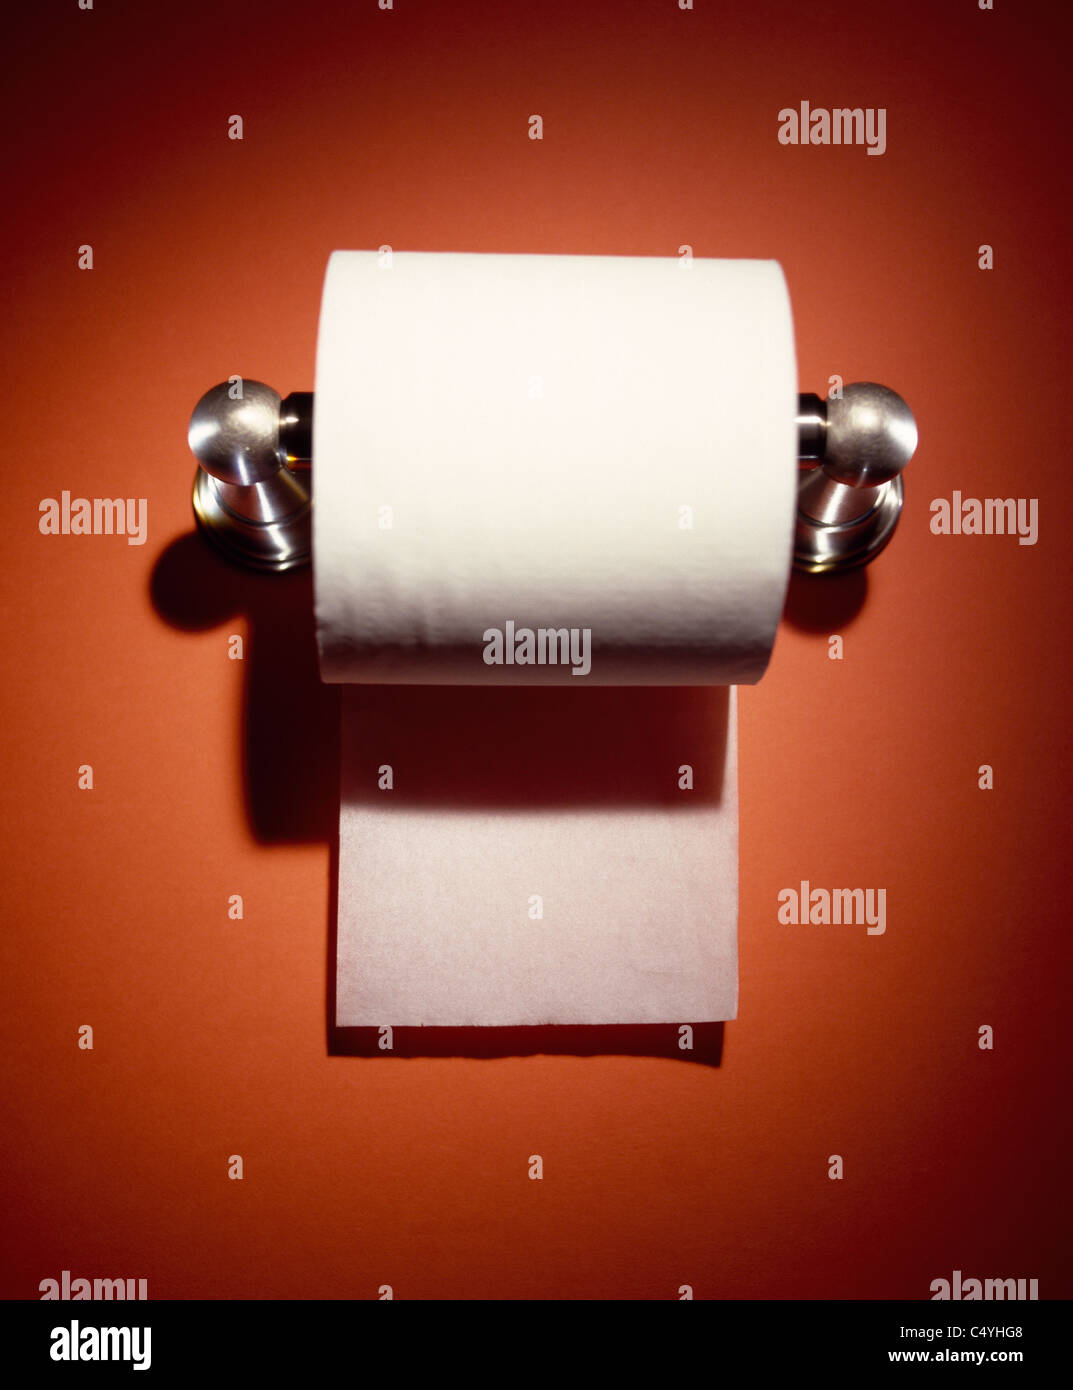 A spotlight on a toilet paper holder and paper roll - Stock Image